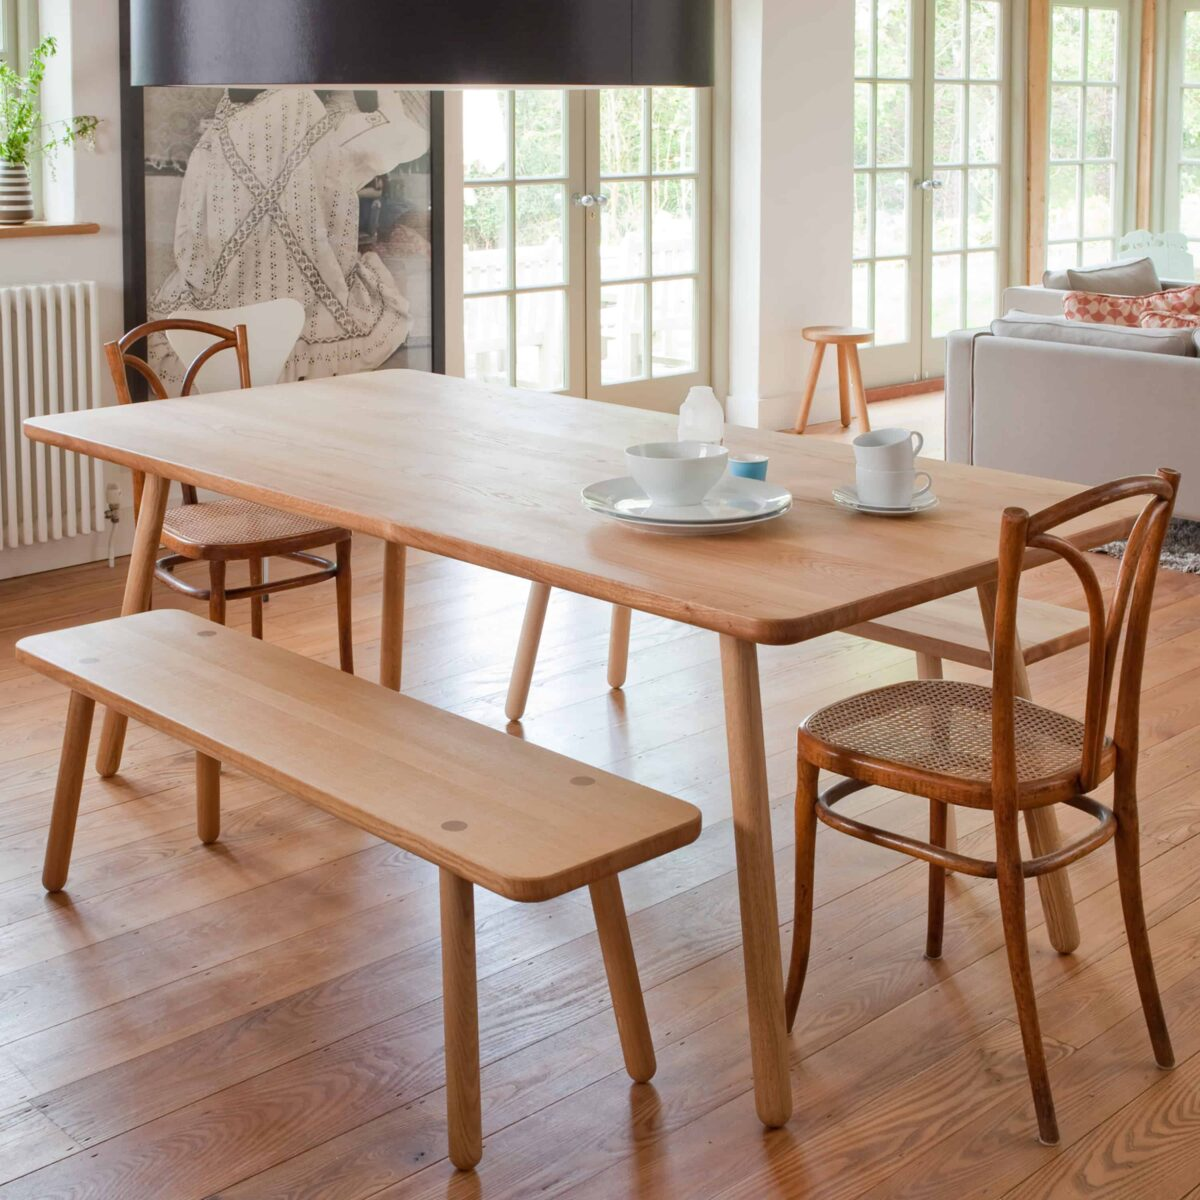 series_one_lifestyle_dining_table_bench_another_country_001